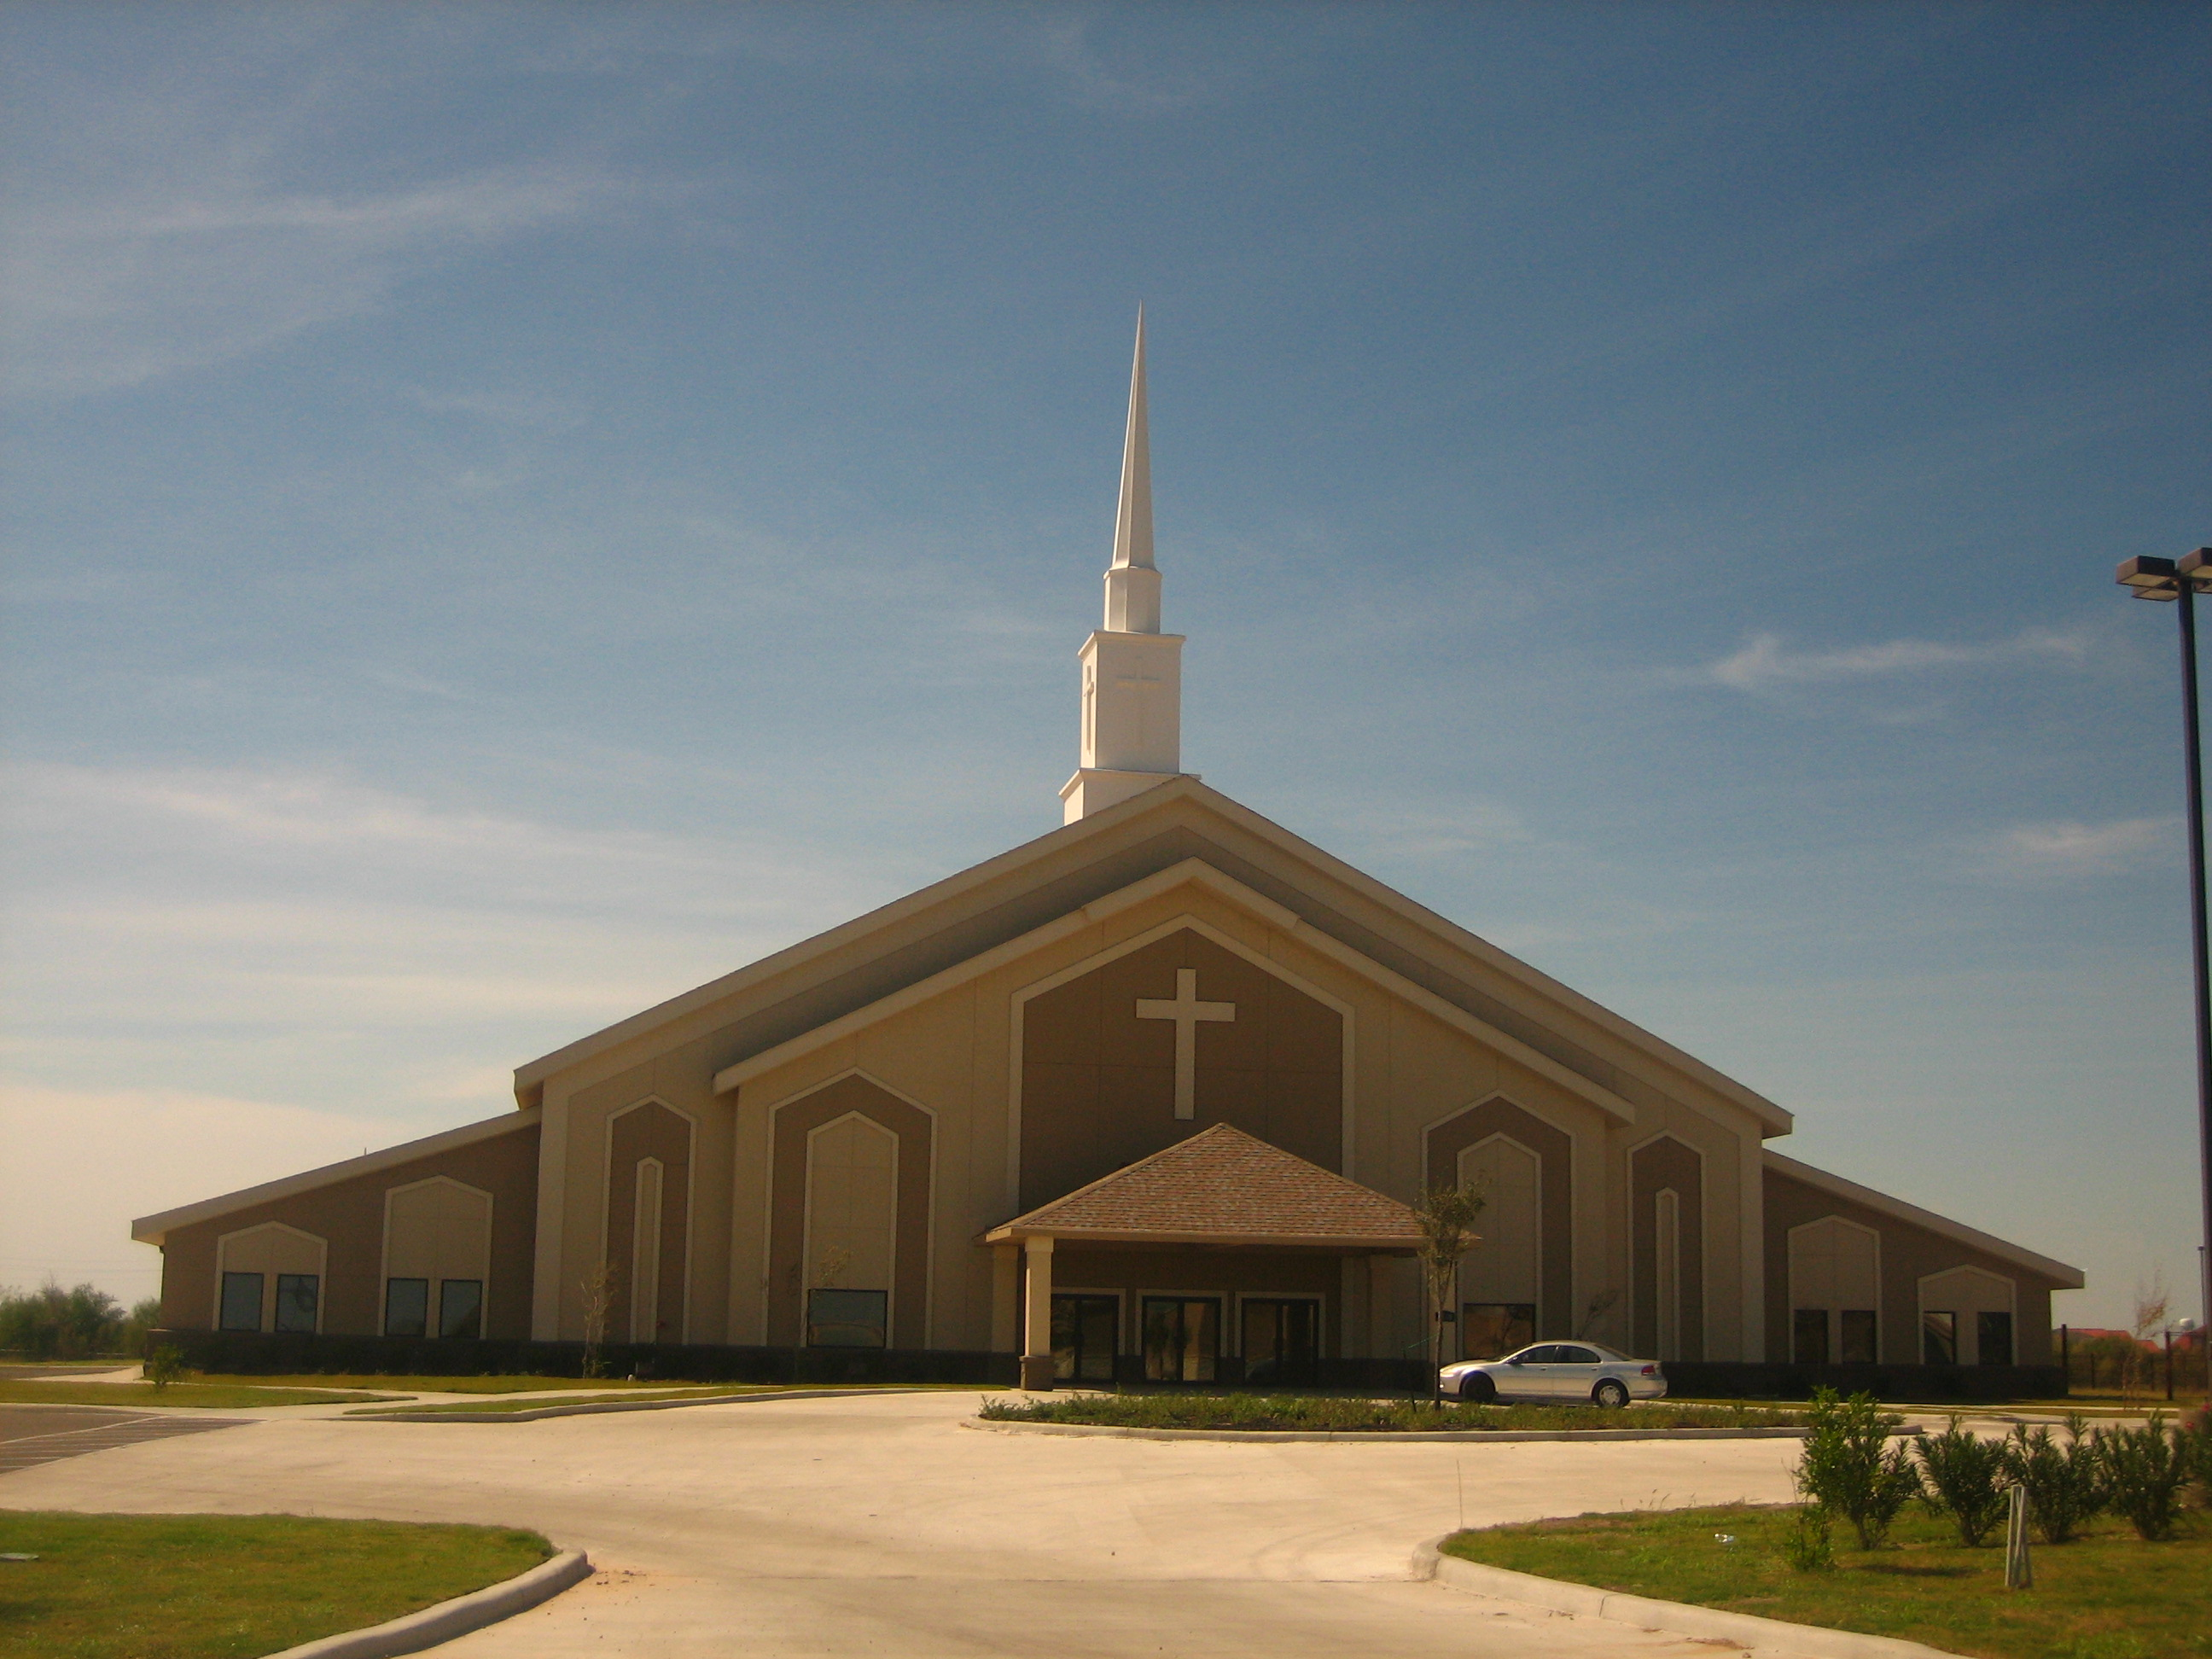 File:New sanctuary of First Baptist Church of Laredo, TX IMG 1833.JPG ...